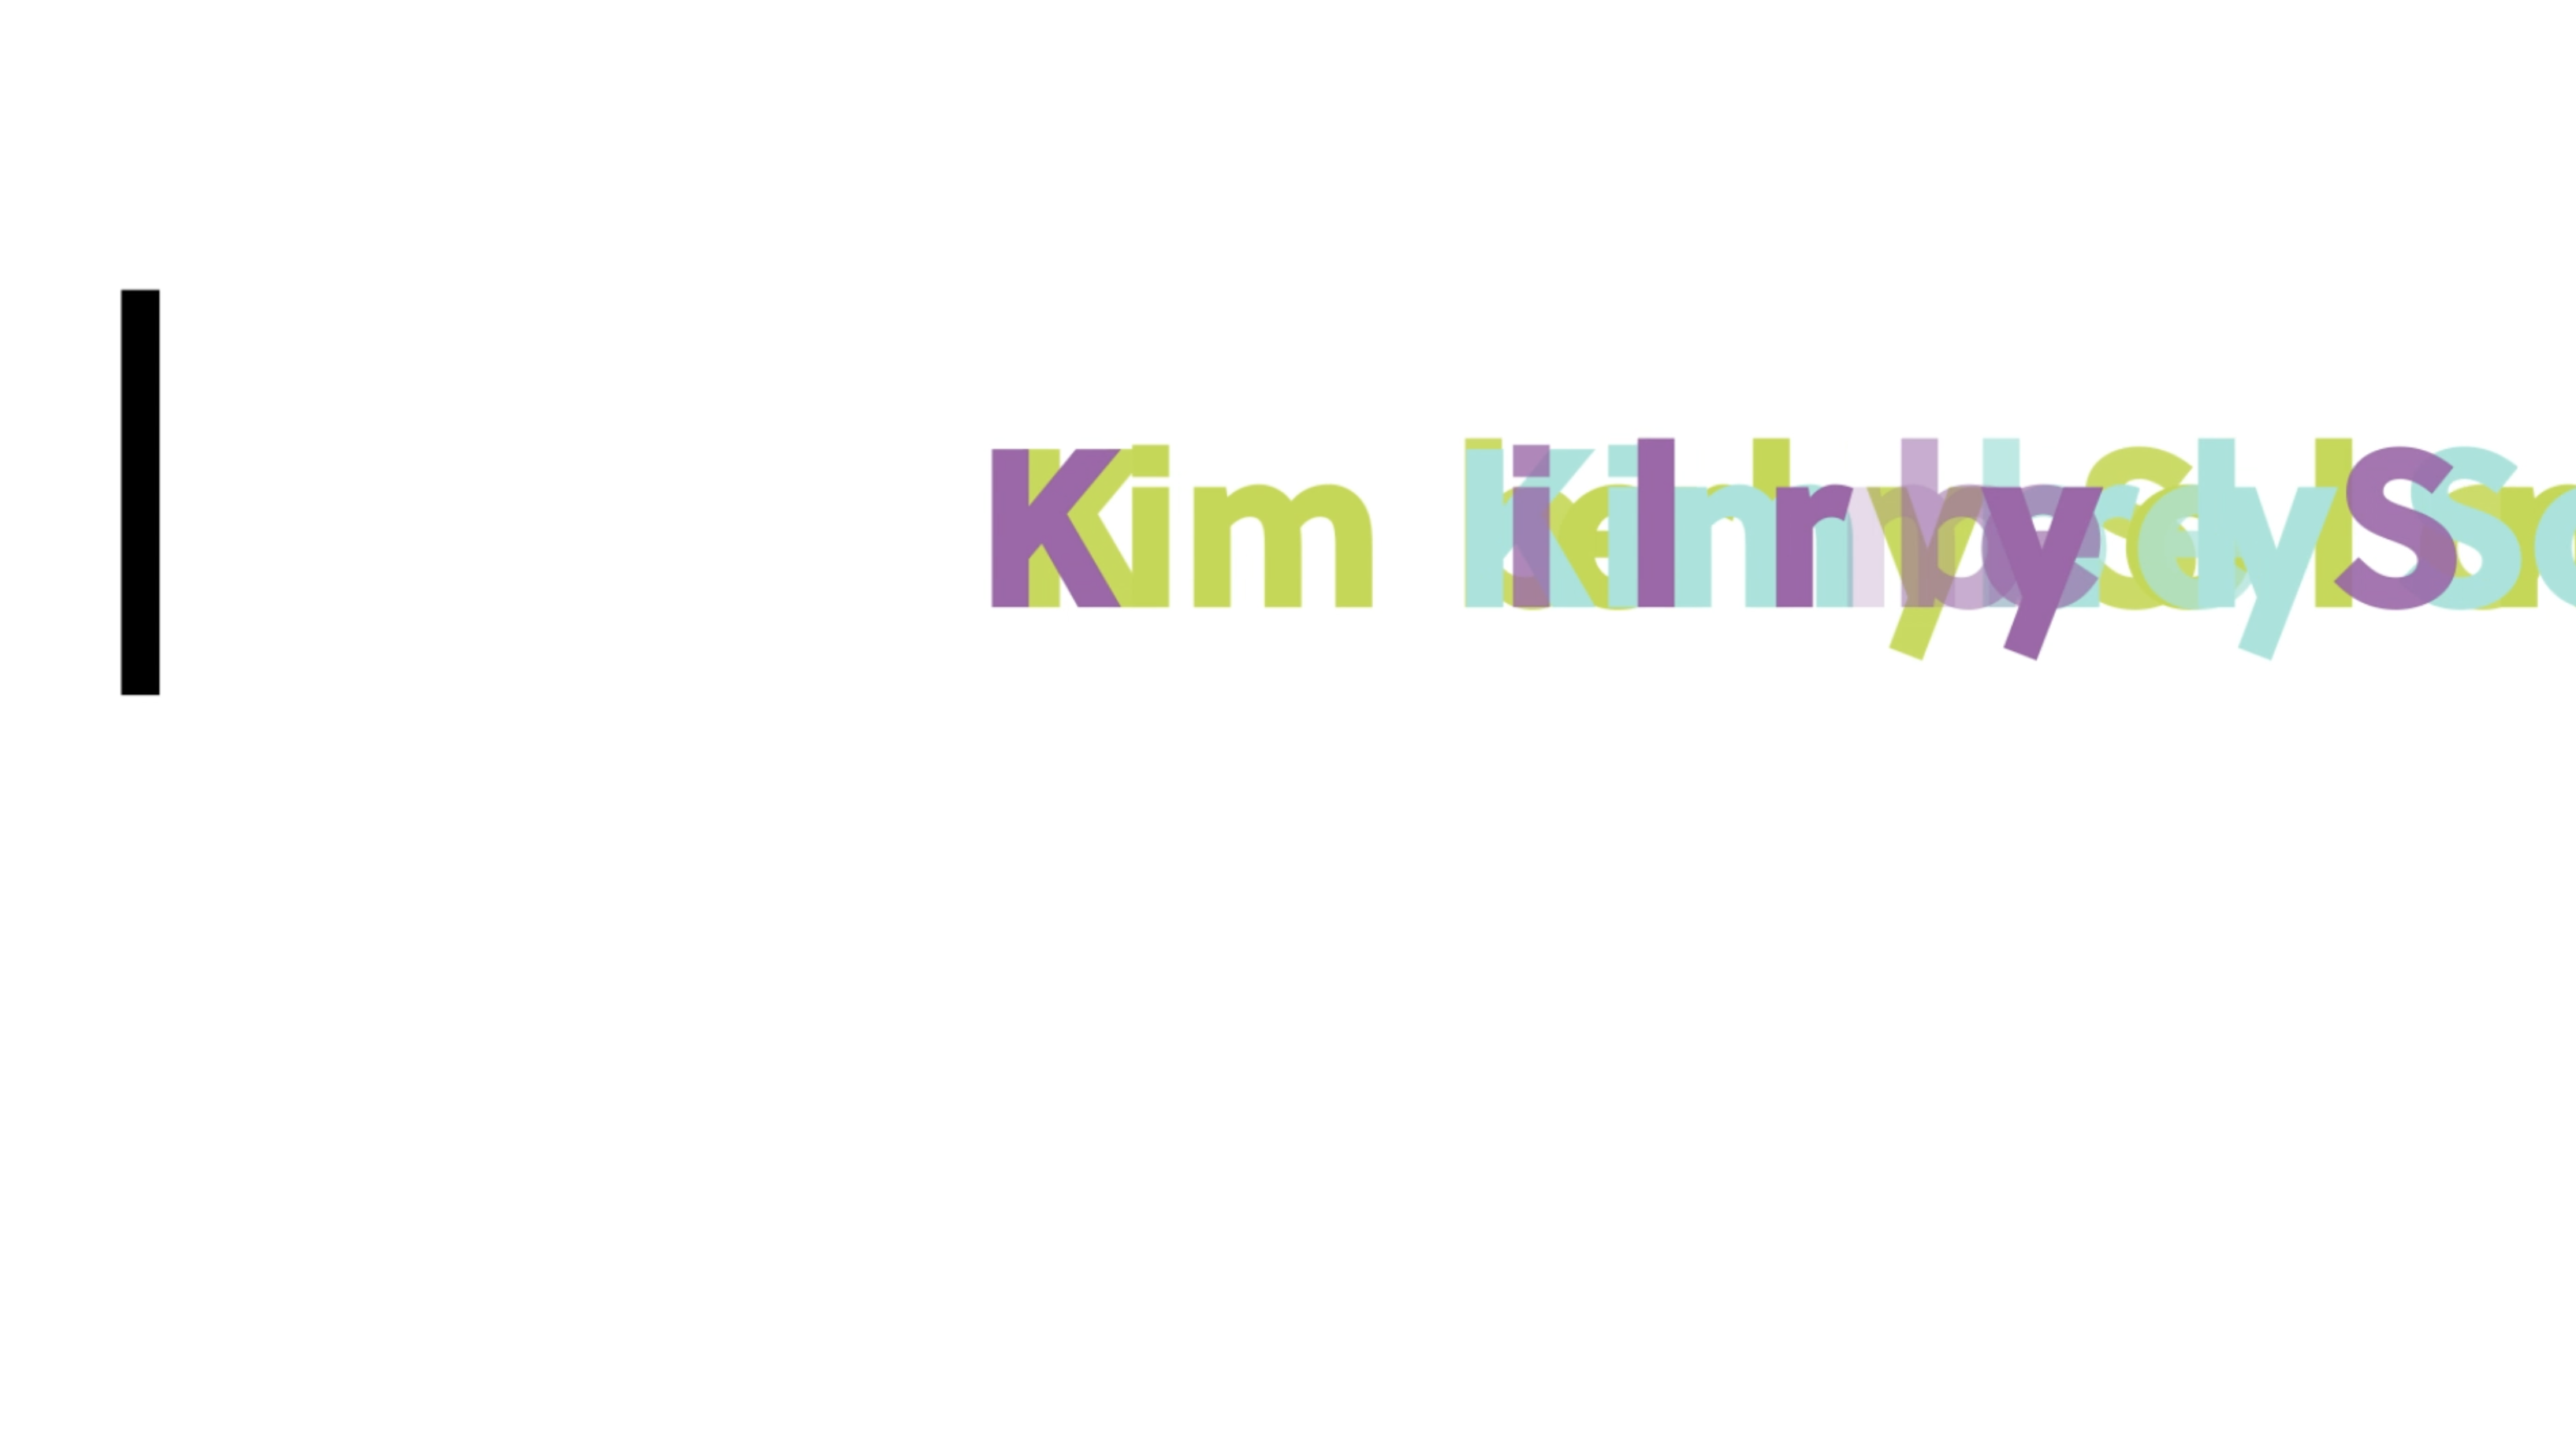 A still frame of an animation revealing Kimberly Solon's logotype.